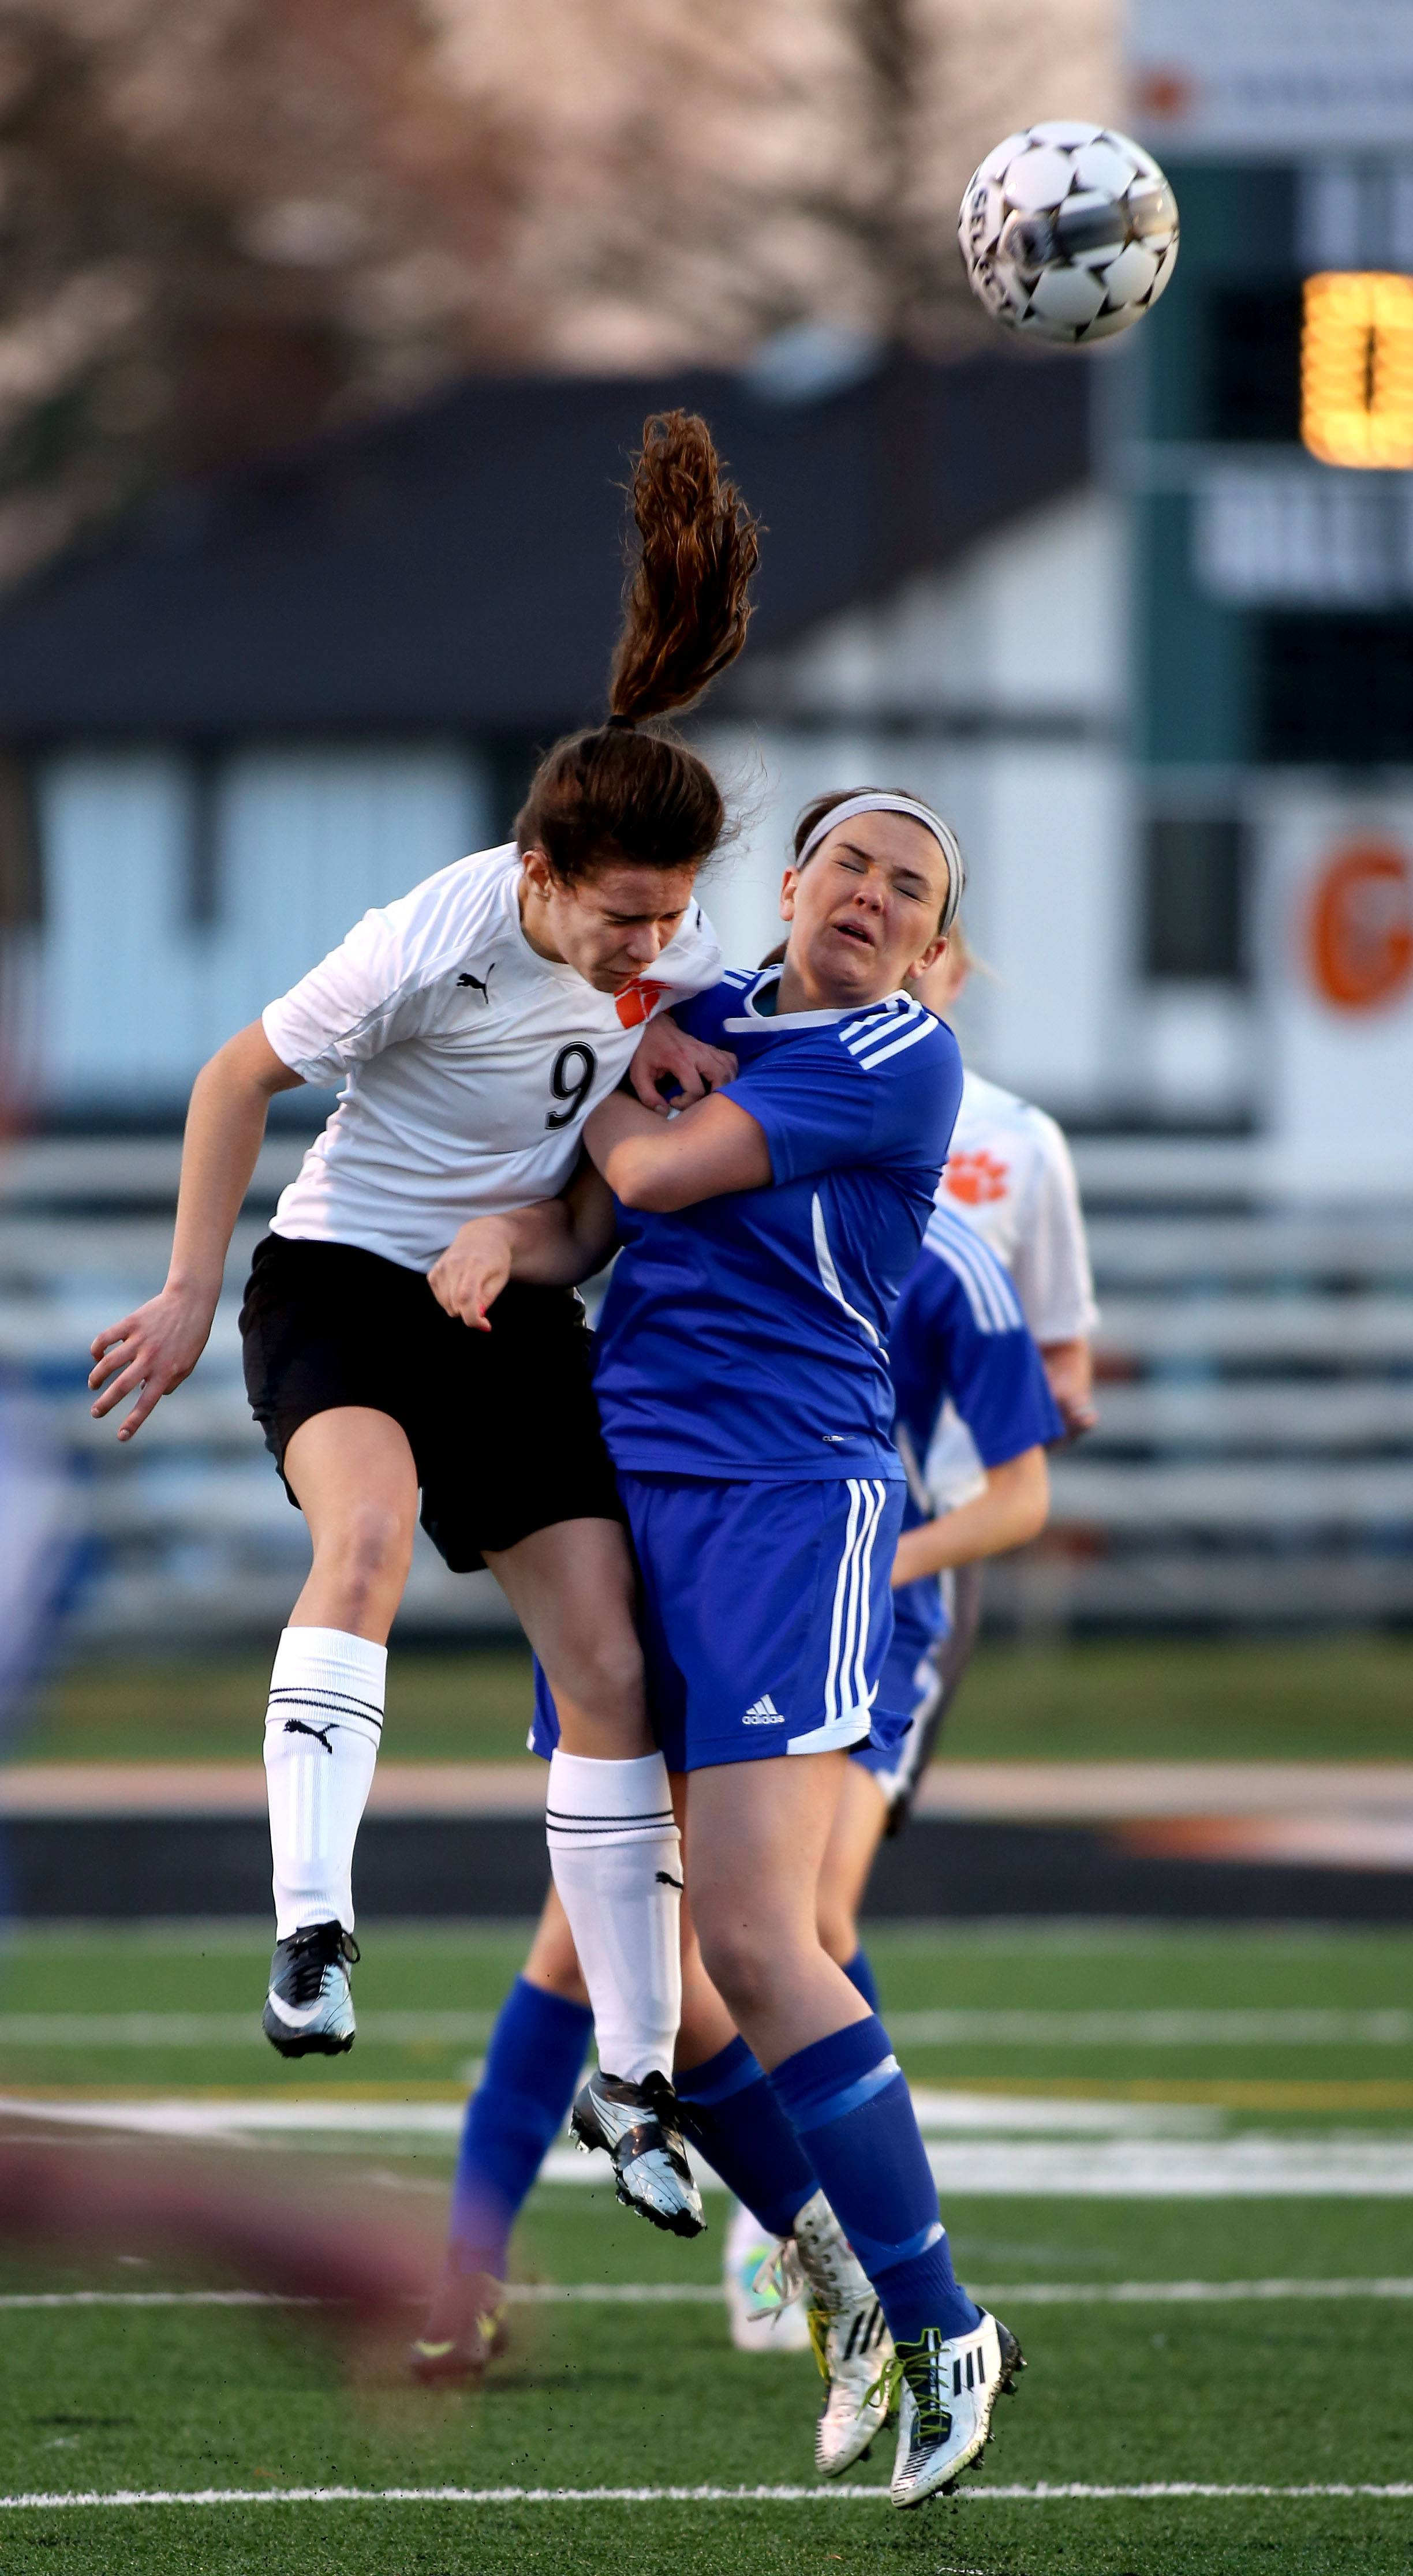 Wheaton Warrenville South's Tori Adomshick, left, heads the ball away from Wheaton North's Madelyn Stubits during Tuesday's soccer match.